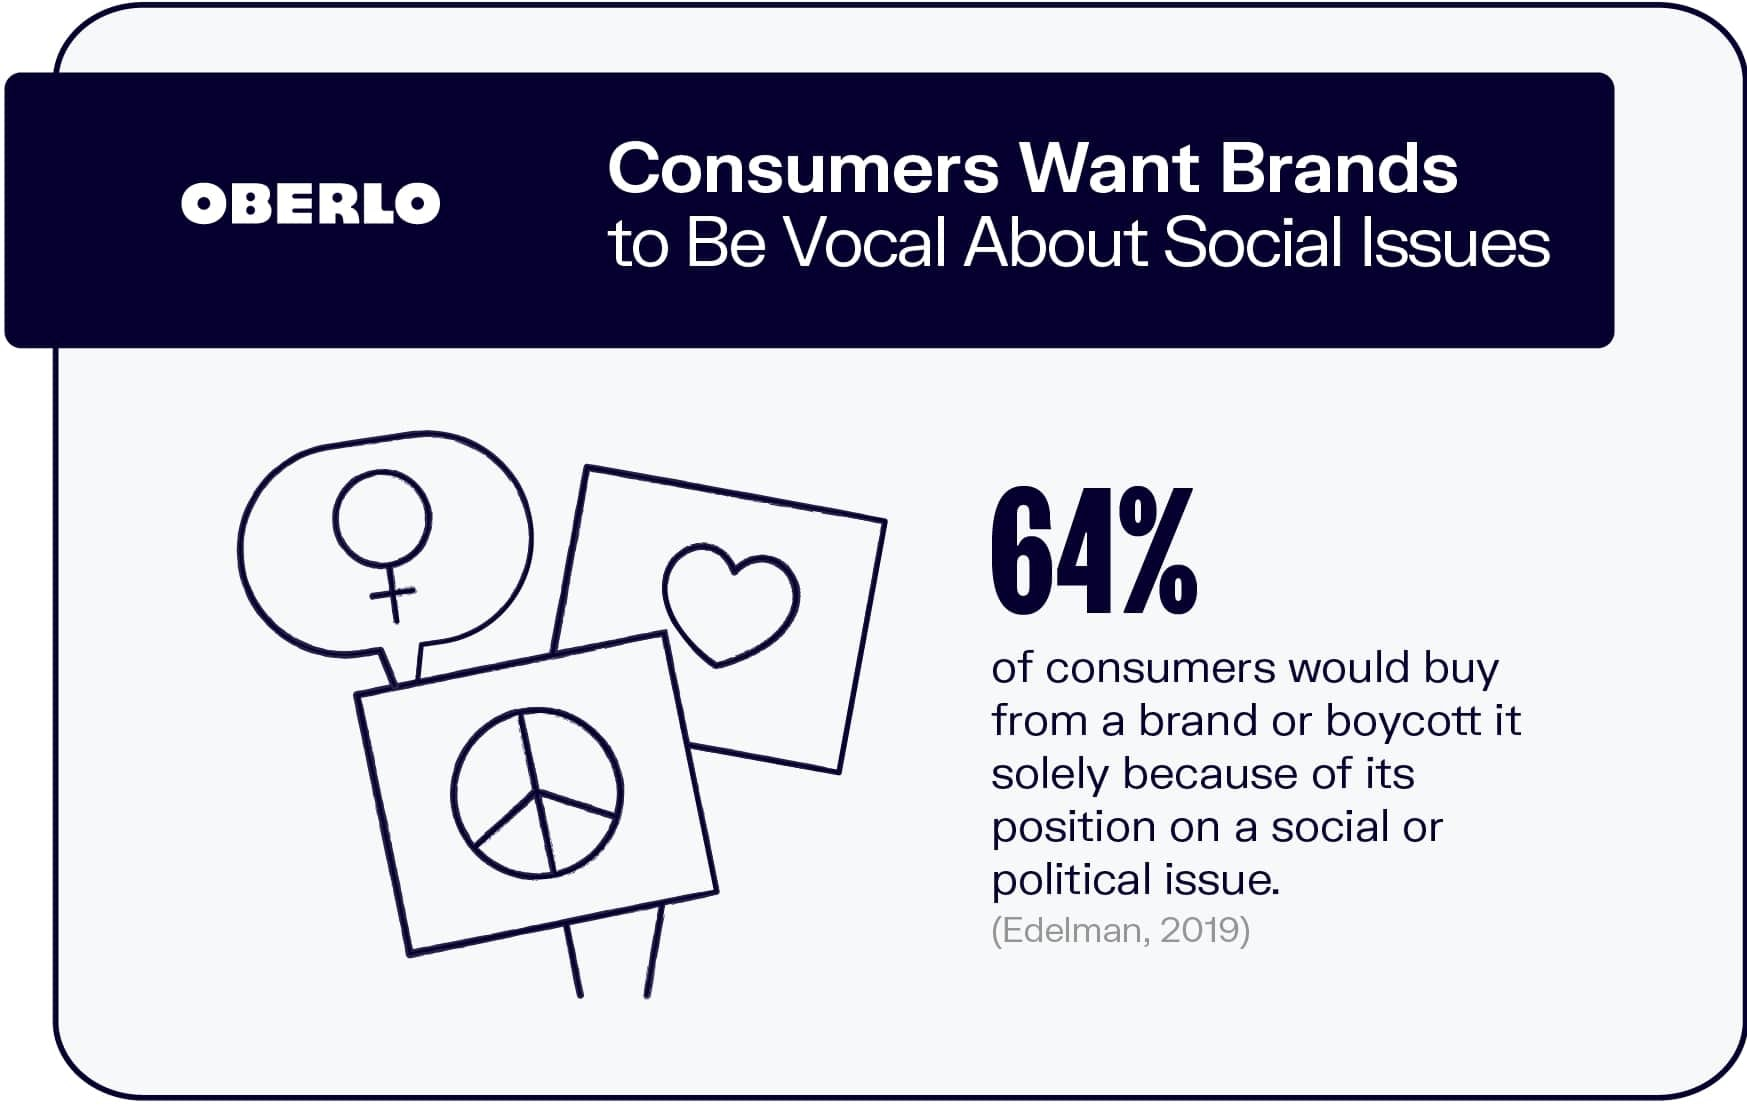 Consumers Want Brands to Be Vocal About Social Issues